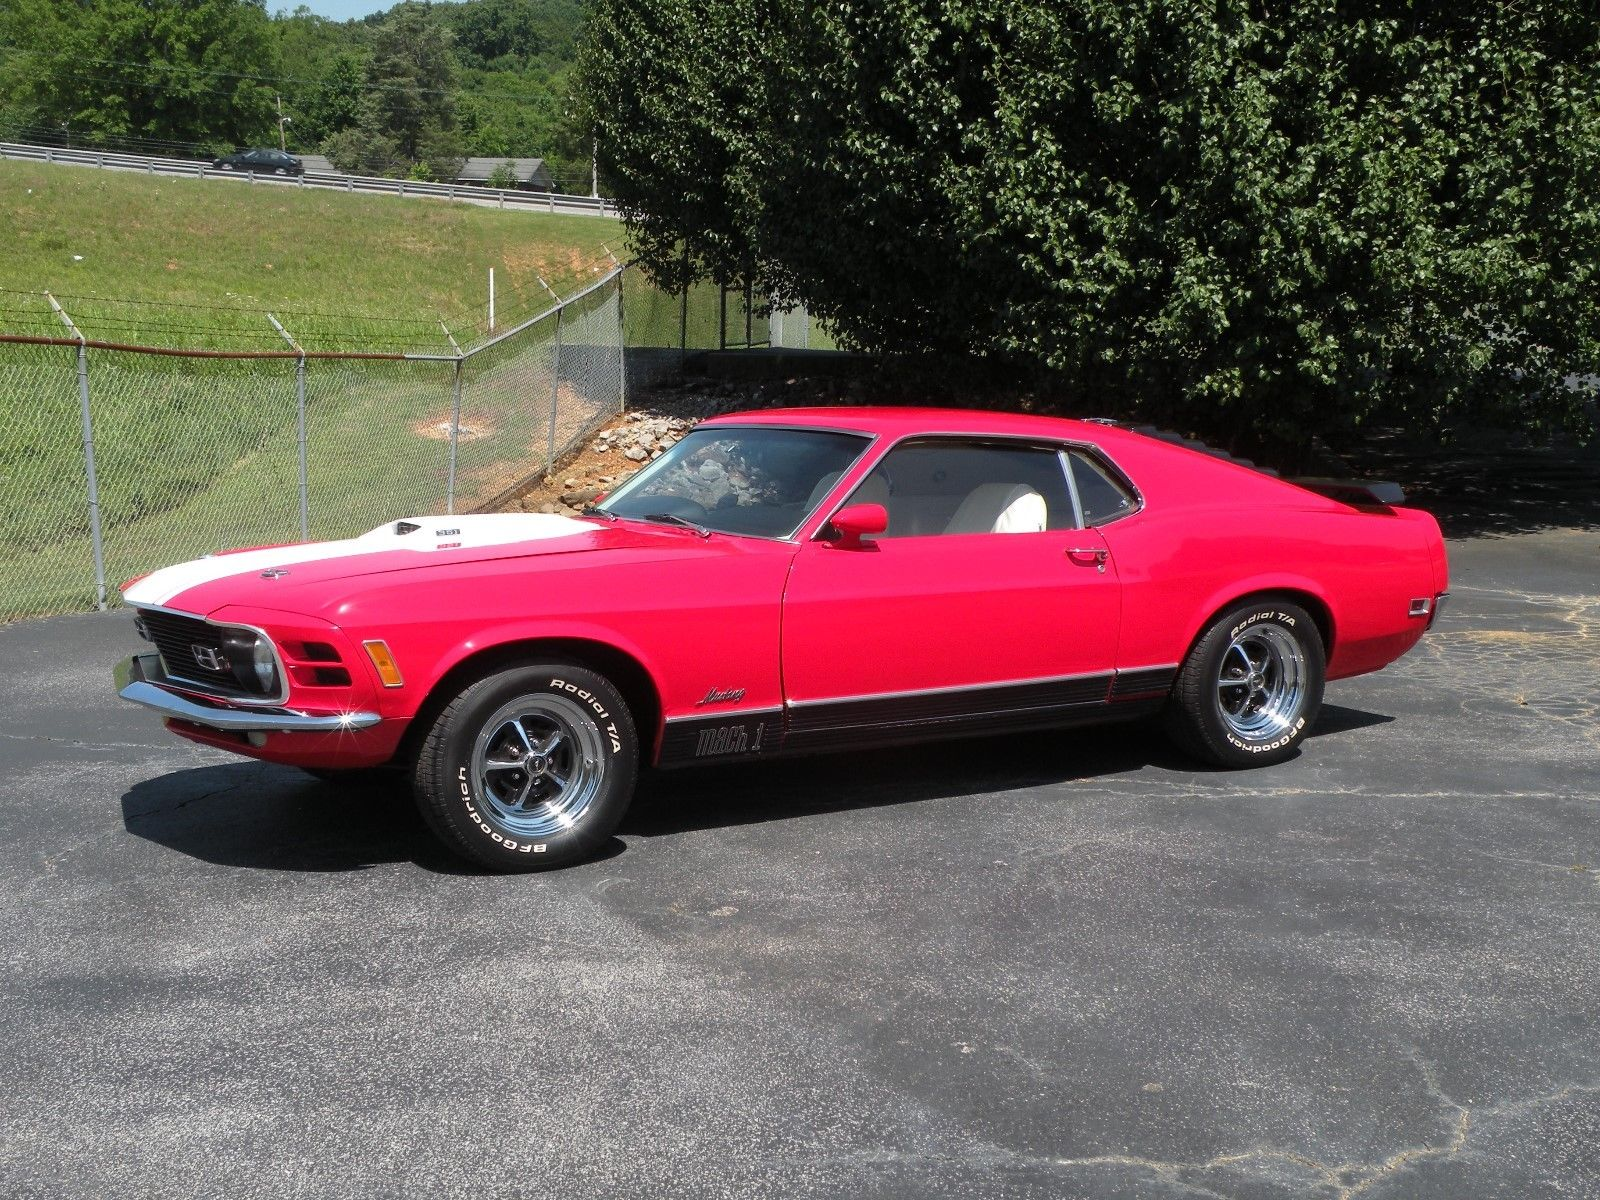 Great 1970 ford mustang mach 1 1970 mustang 428 q code 4 speed shaker hood q code manual 320 made in 70 2019